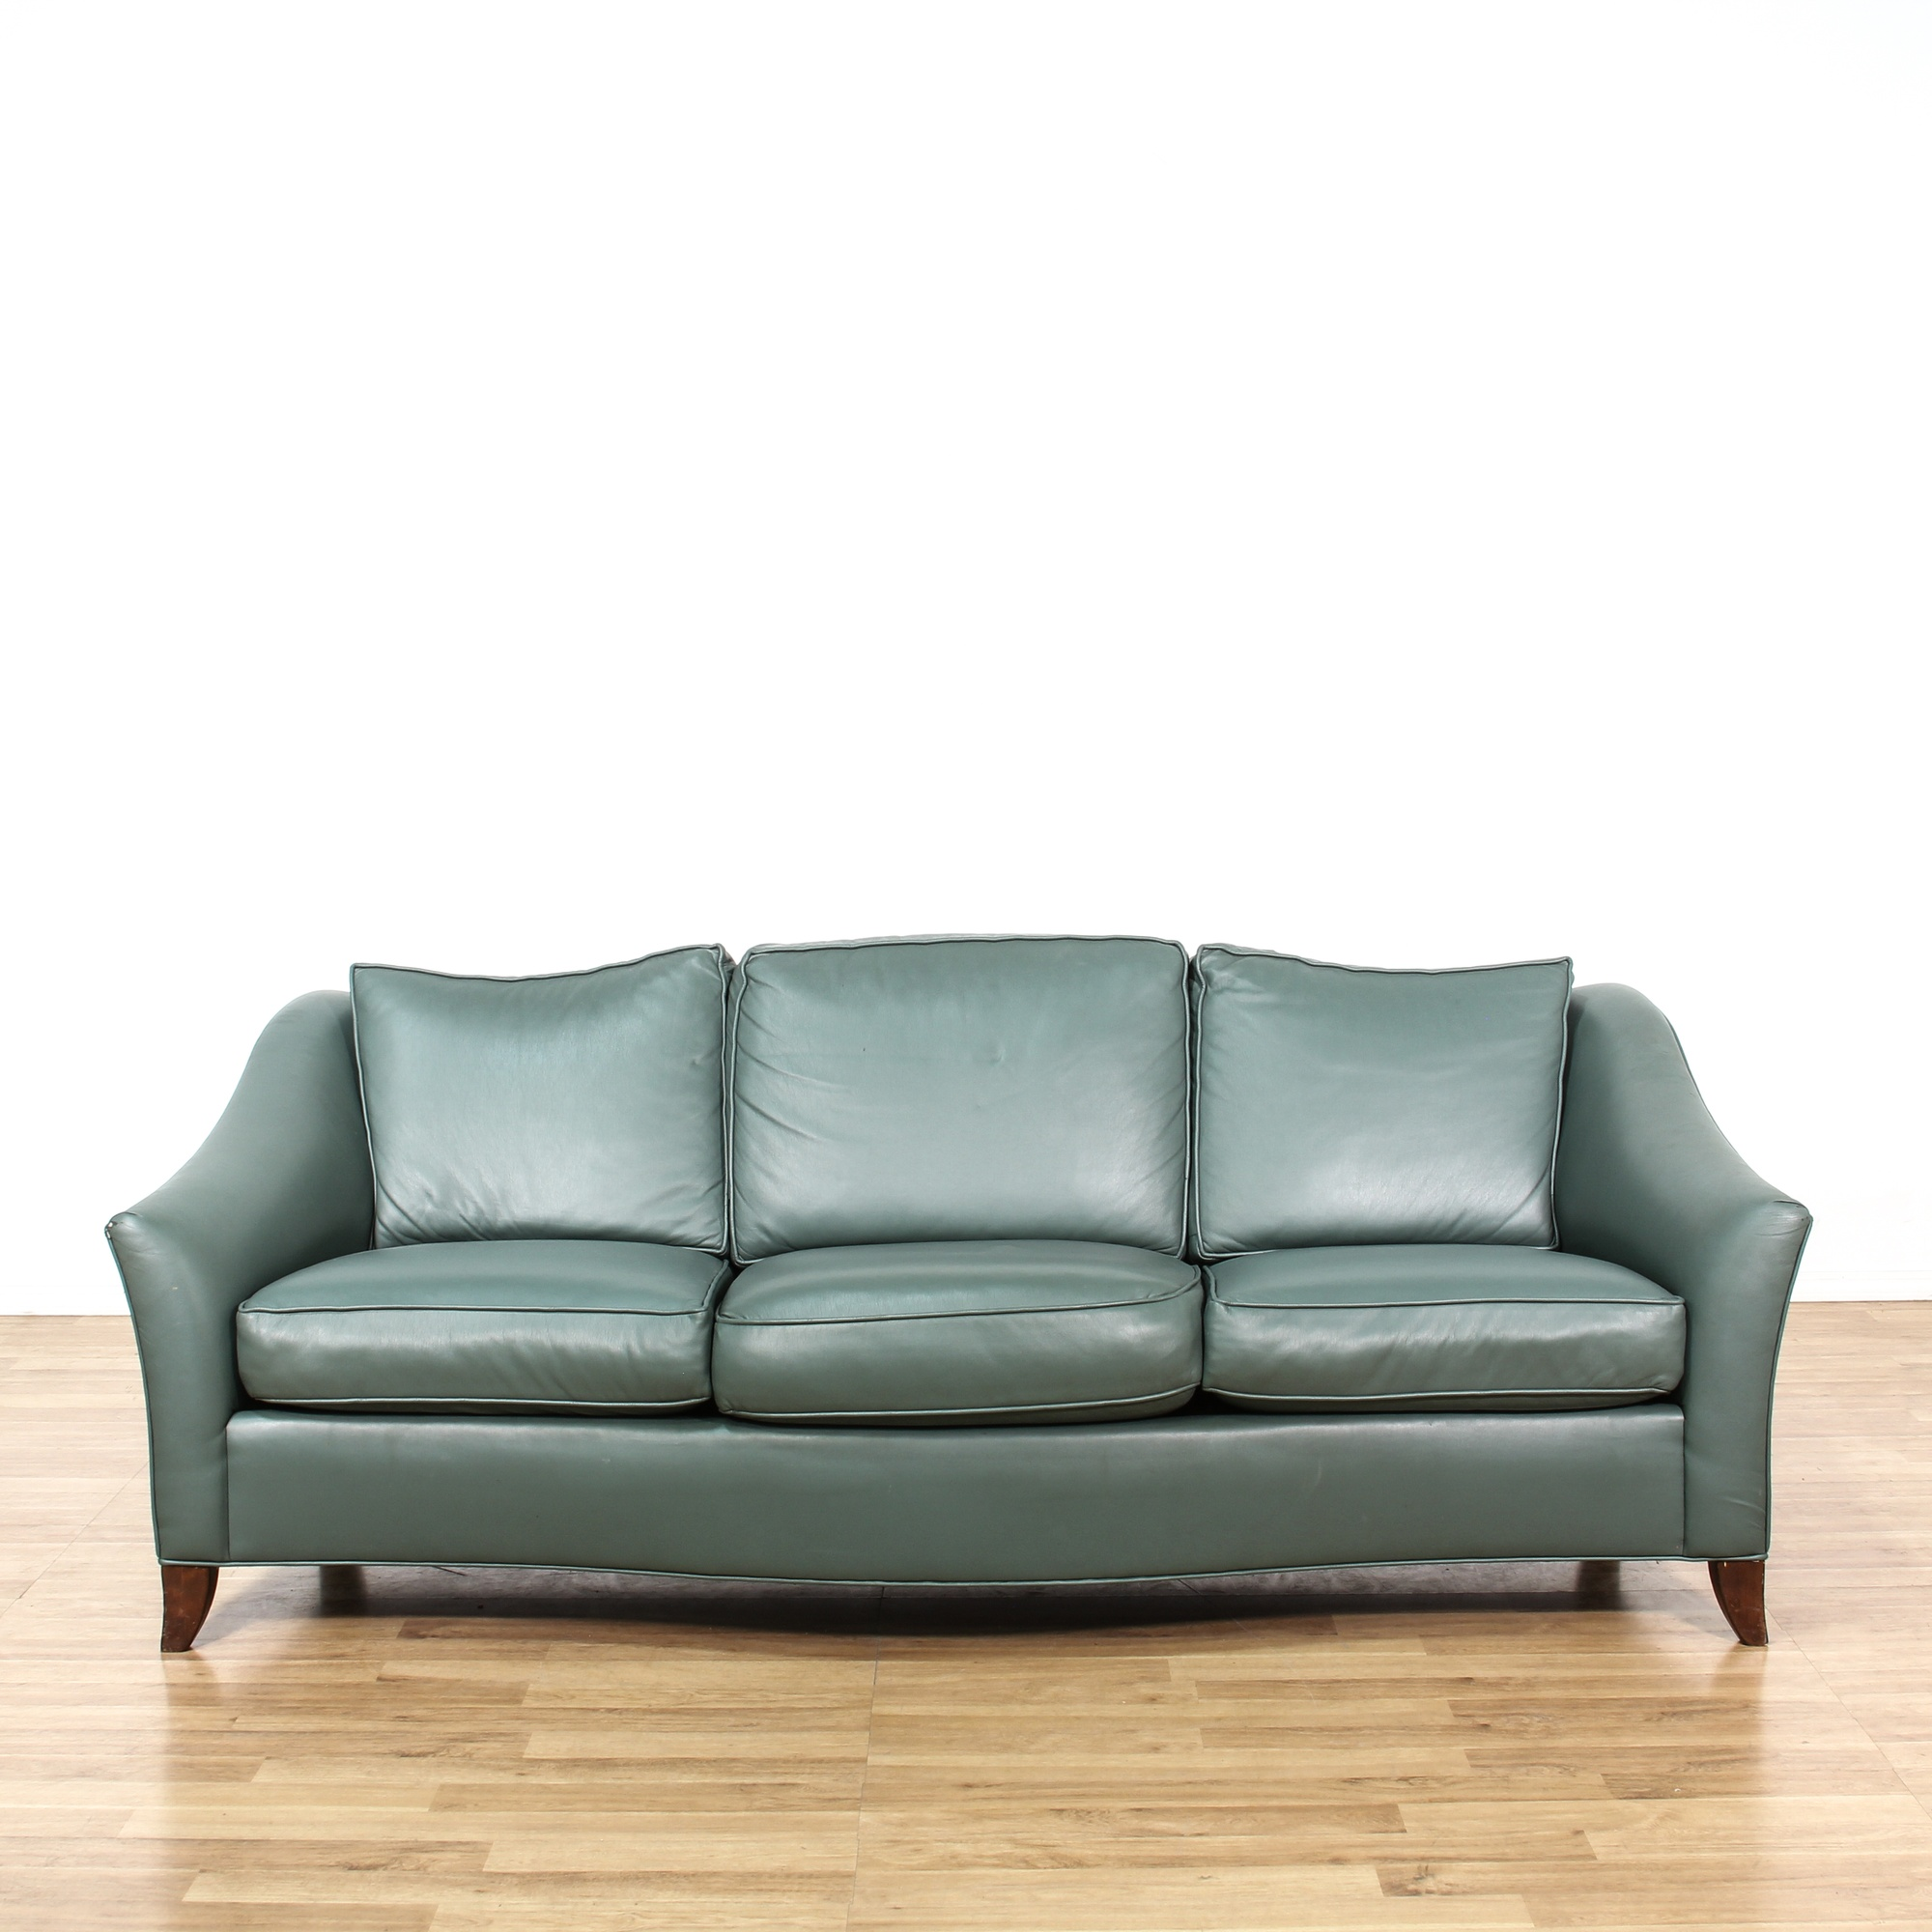 Contemporary Soft Green Leather Sofa Loveseat Vintage Furniture San Diego Los Angeles